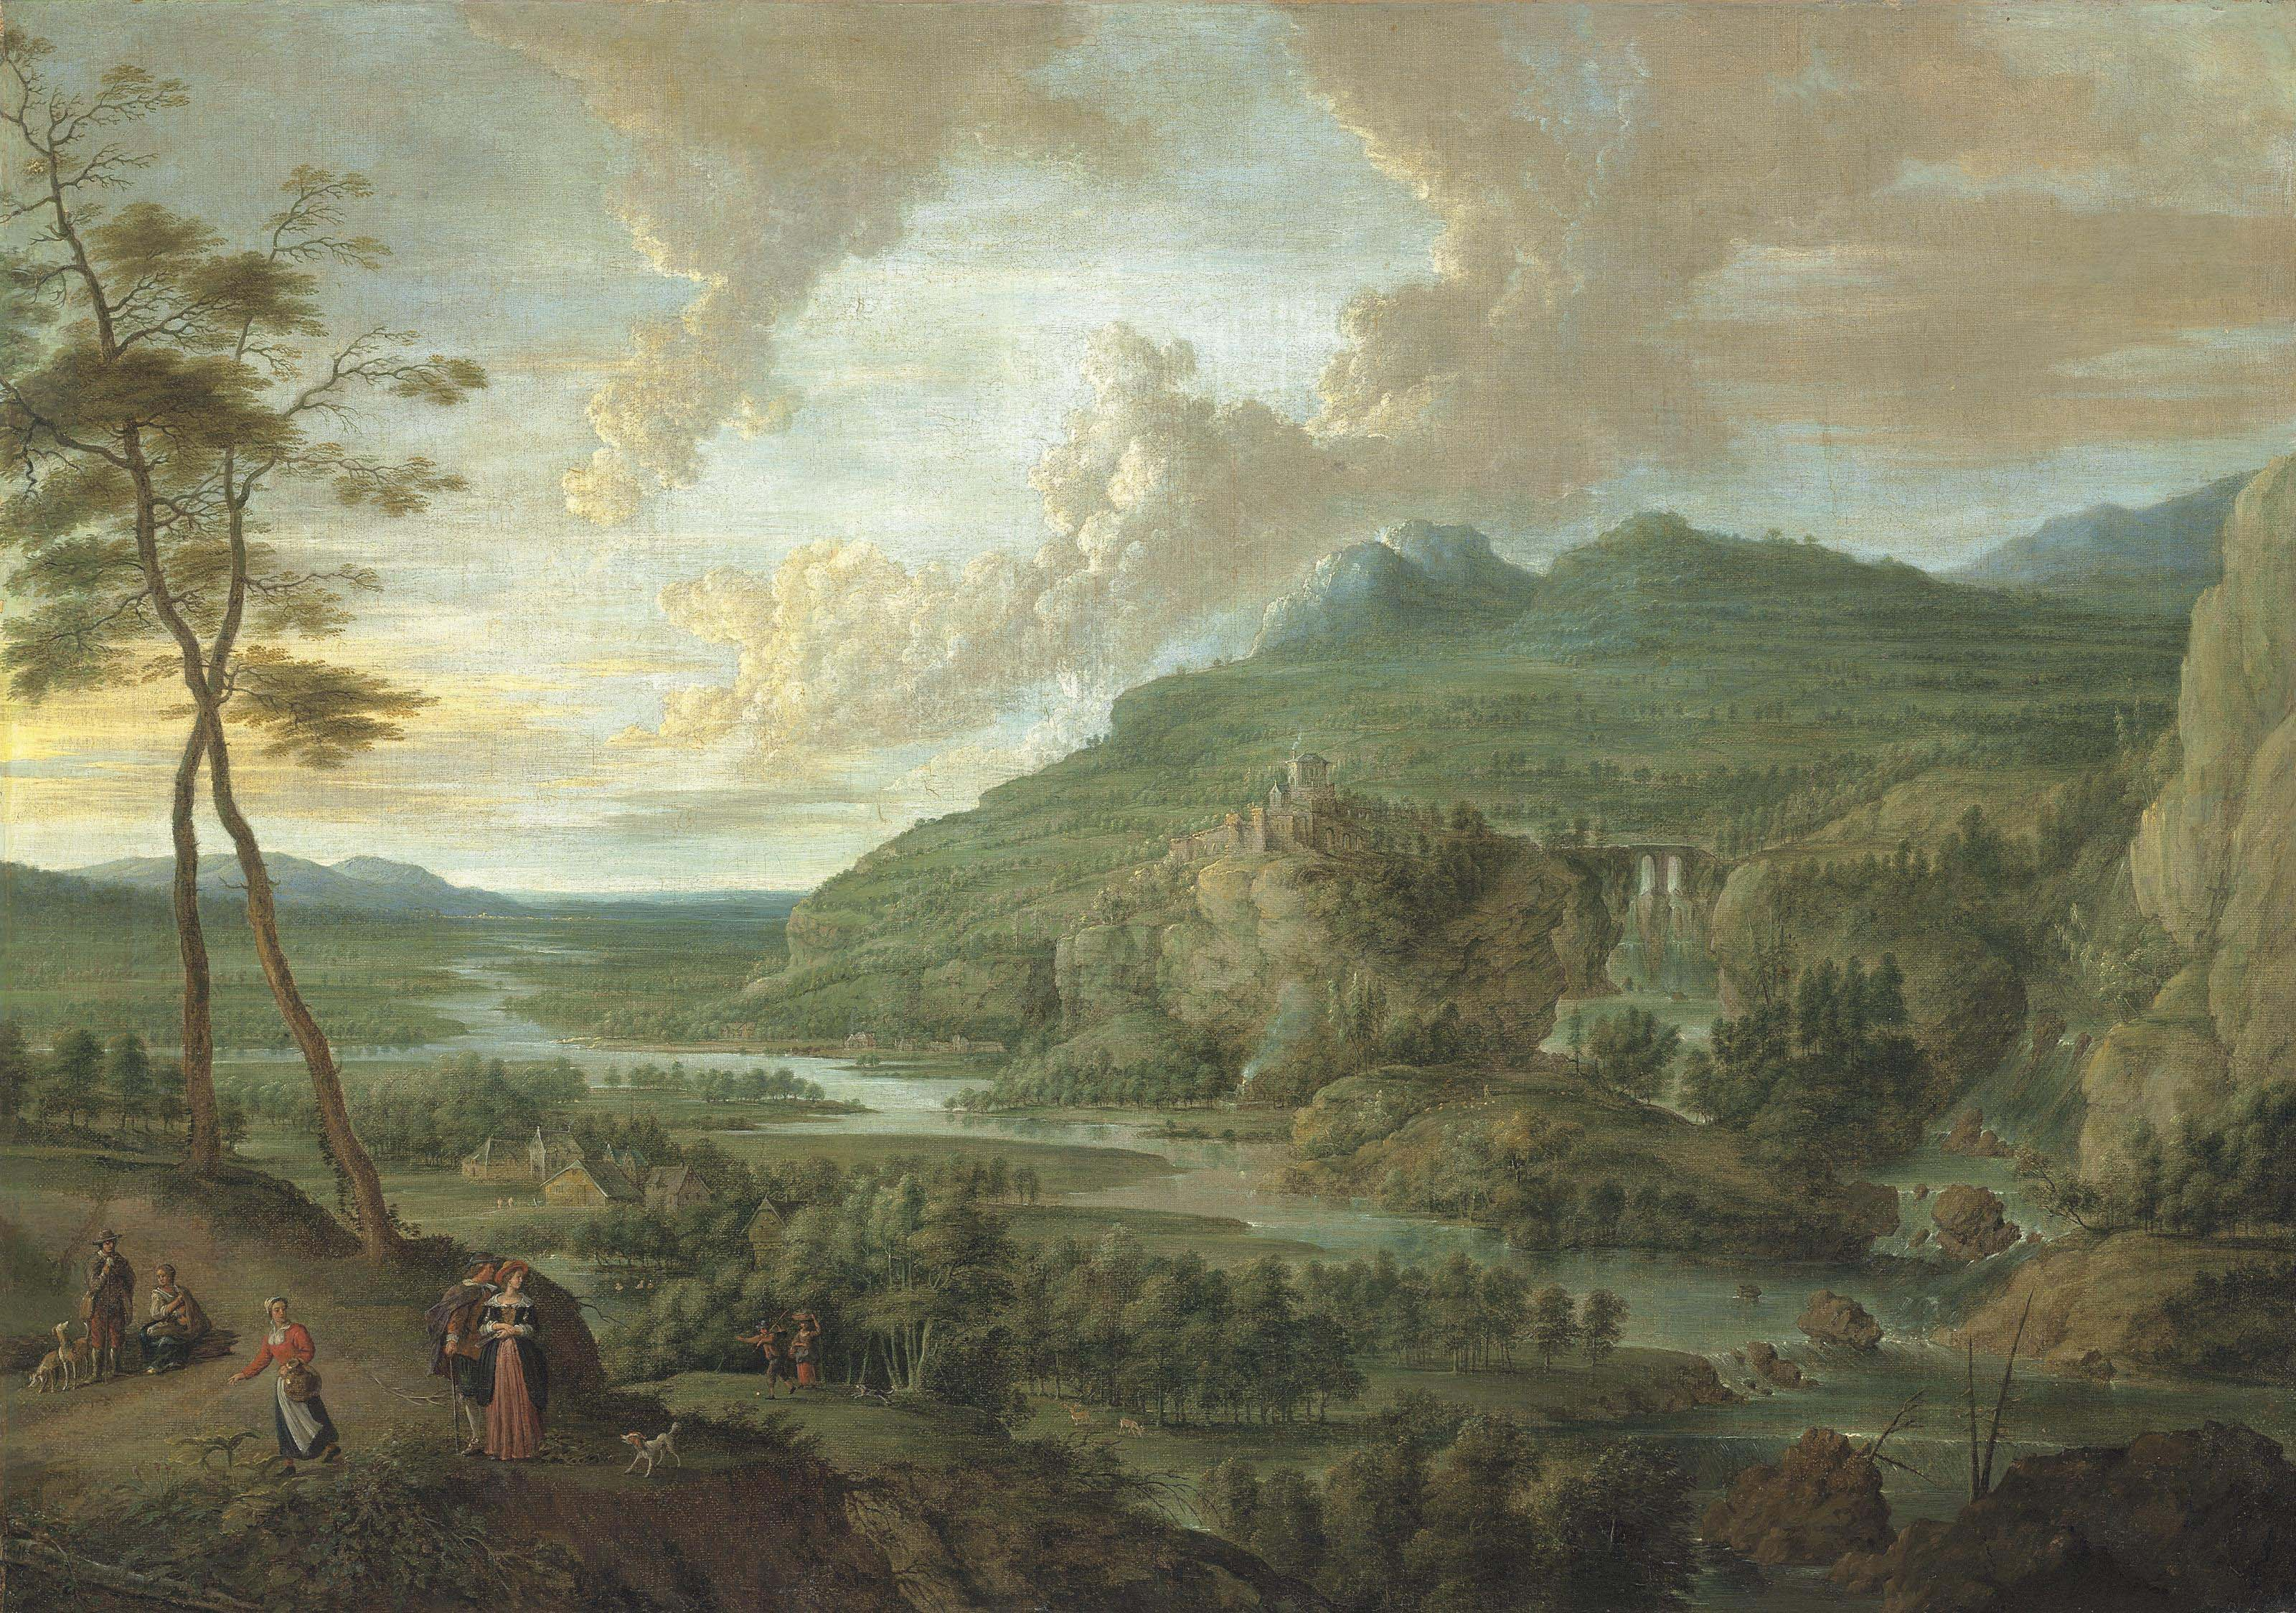 An extensive wooded river landscape with figures on a path in the forground, a village and a fortess in mountains beyond